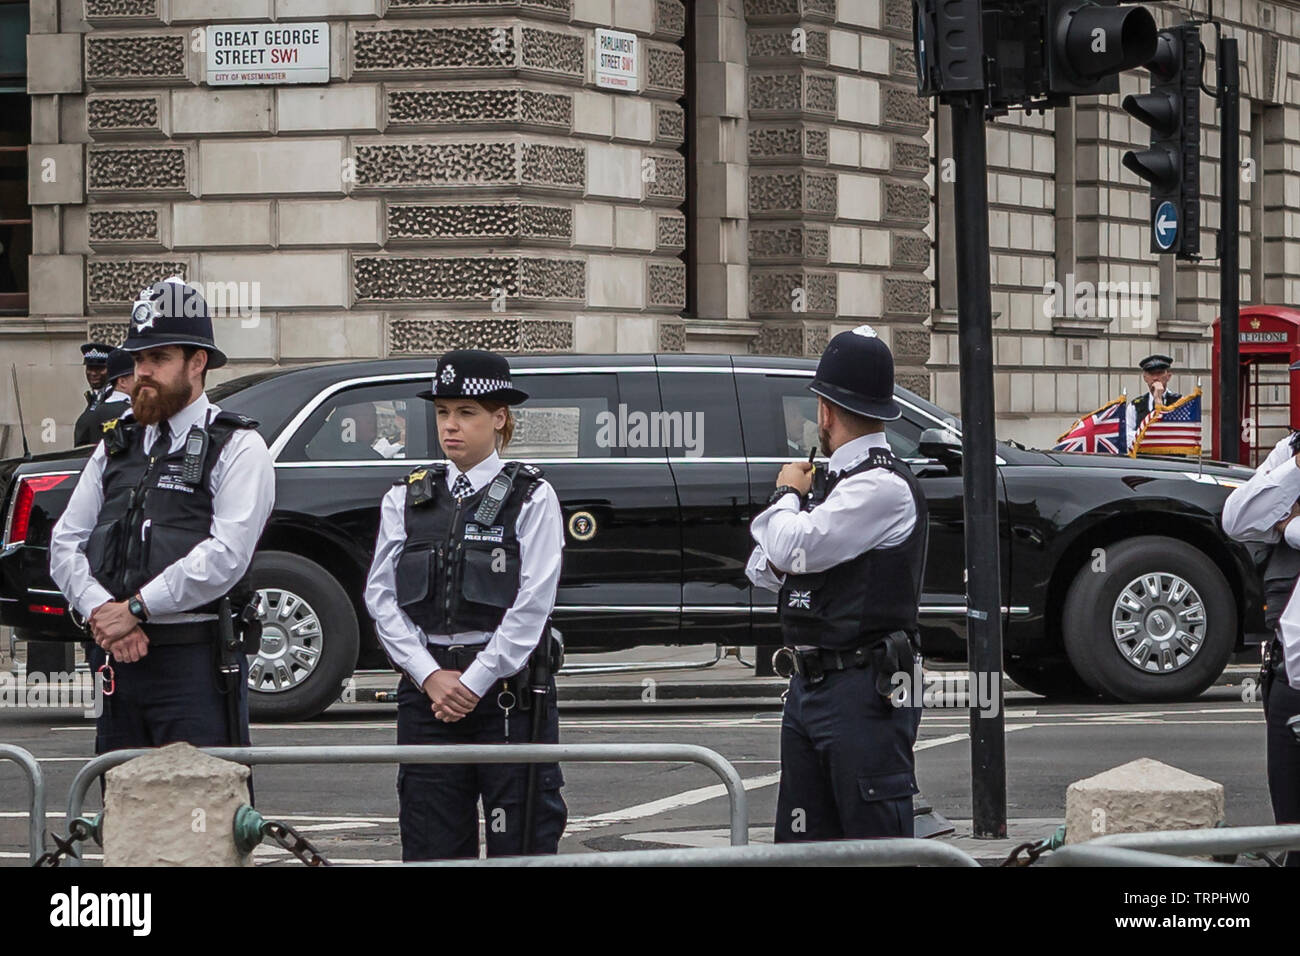 4 June, 2019. Donald Trump looks over at the protesters in Parliament Square from his limousine on Day 2 of his State Visit to the UK Stock Photo